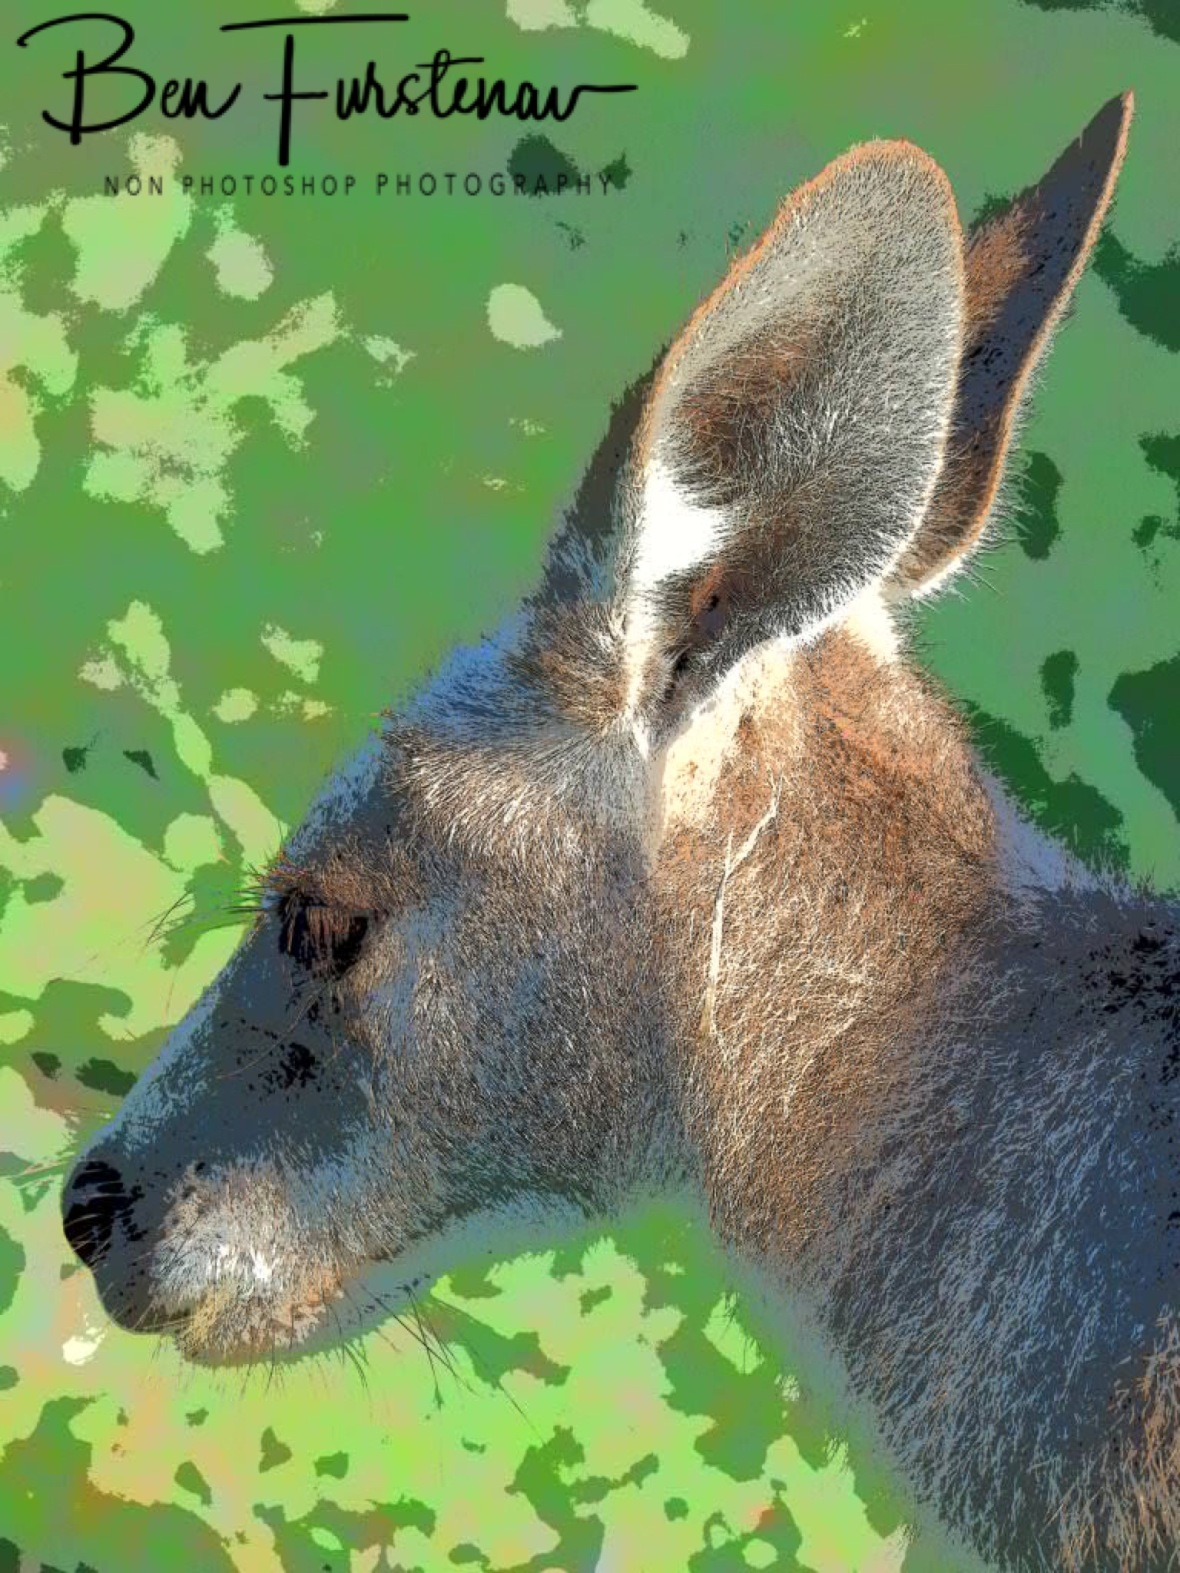 Kangaroo painting, Woody Head, New South Wales, Australia